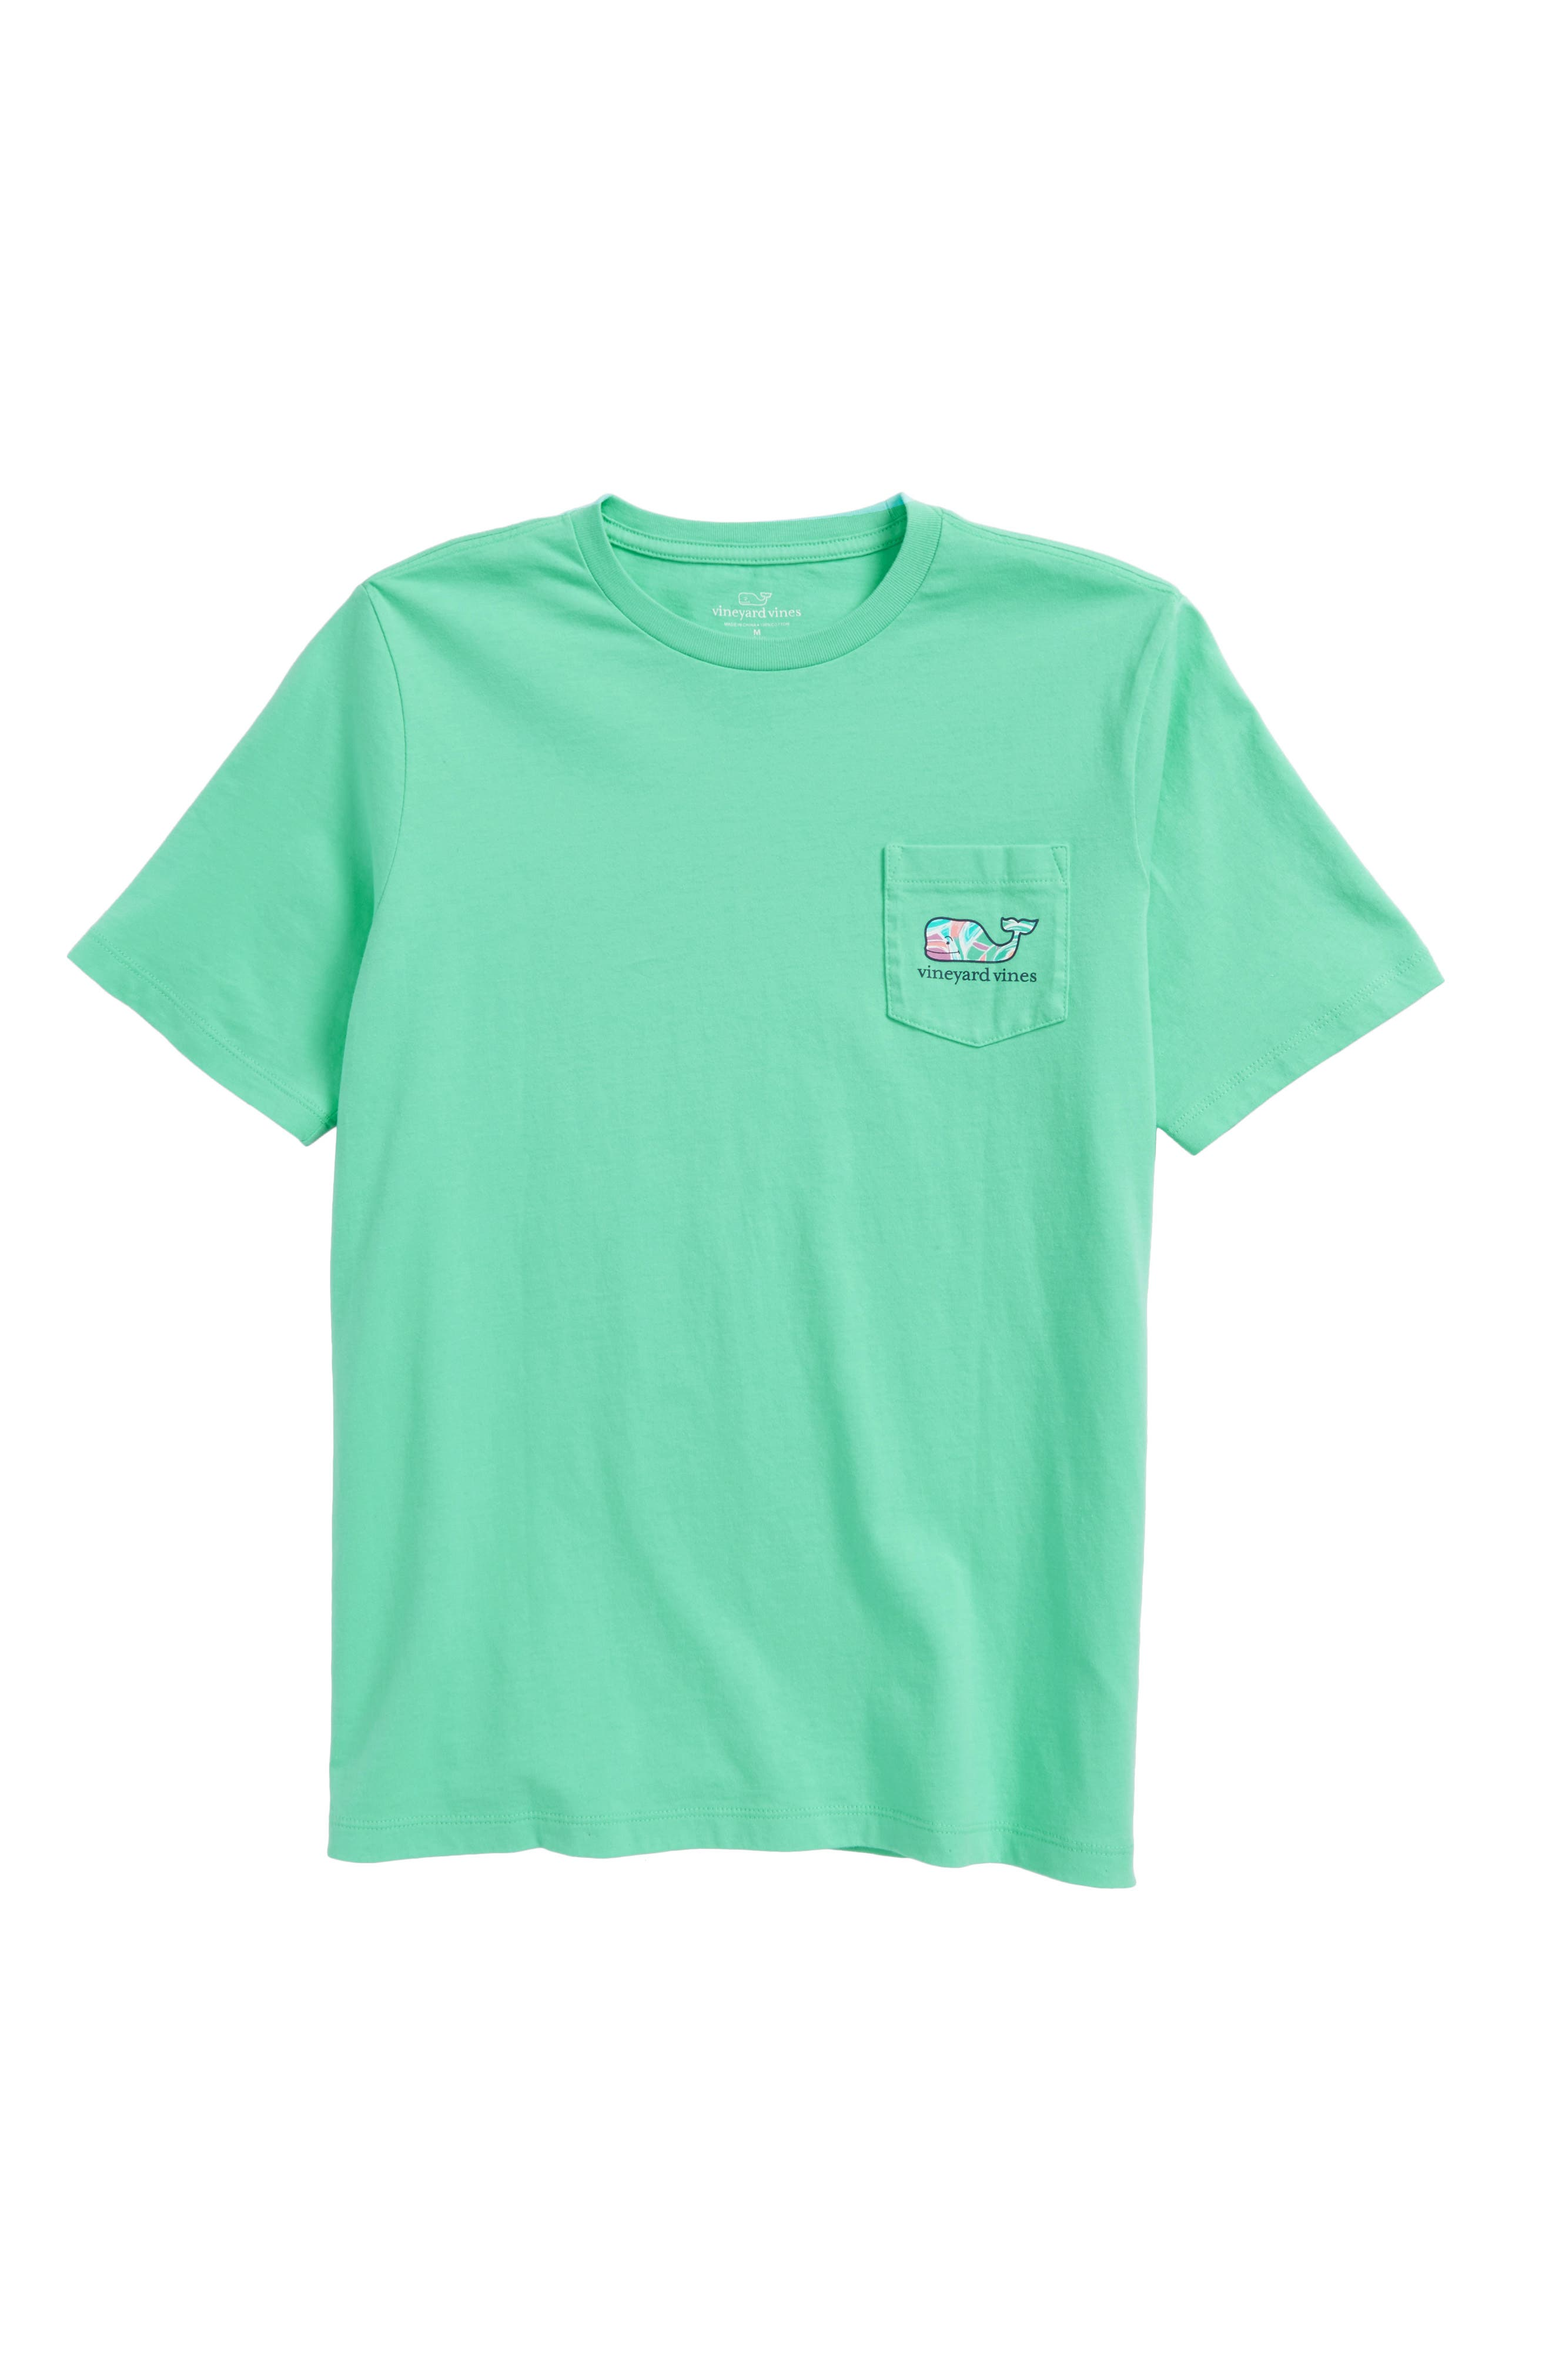 Alternate Image 1 Selected - vineyard vines Gulf Tropical Whale Fill Pocket T-Shirt (Big Boys)